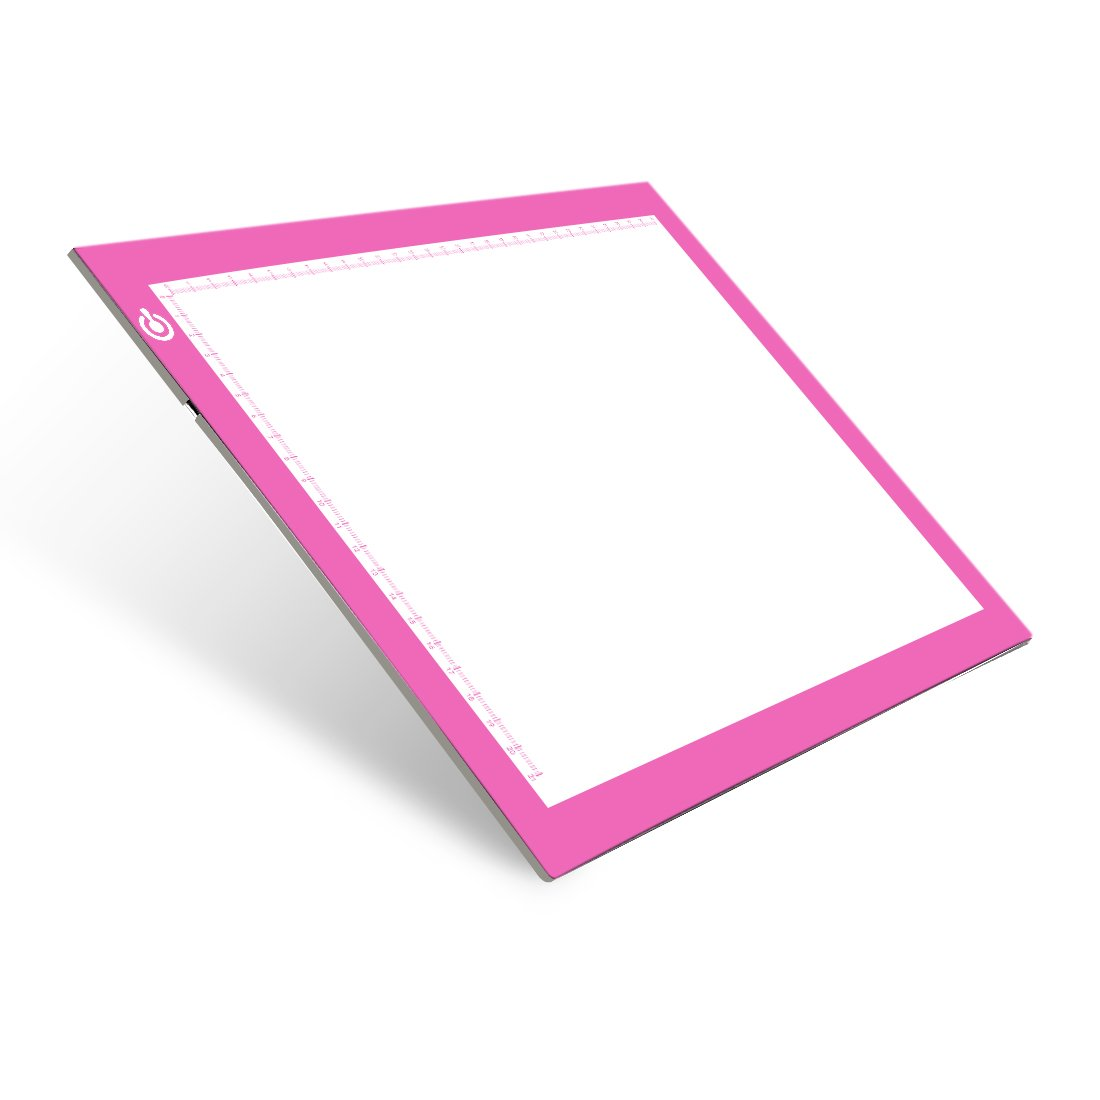 A4 Ultra-thin Portable LED Tracing Light Pad NXENTC Light Table USB Power LED Tracing Light Board for Artists,Drawing, Sketching, Animation